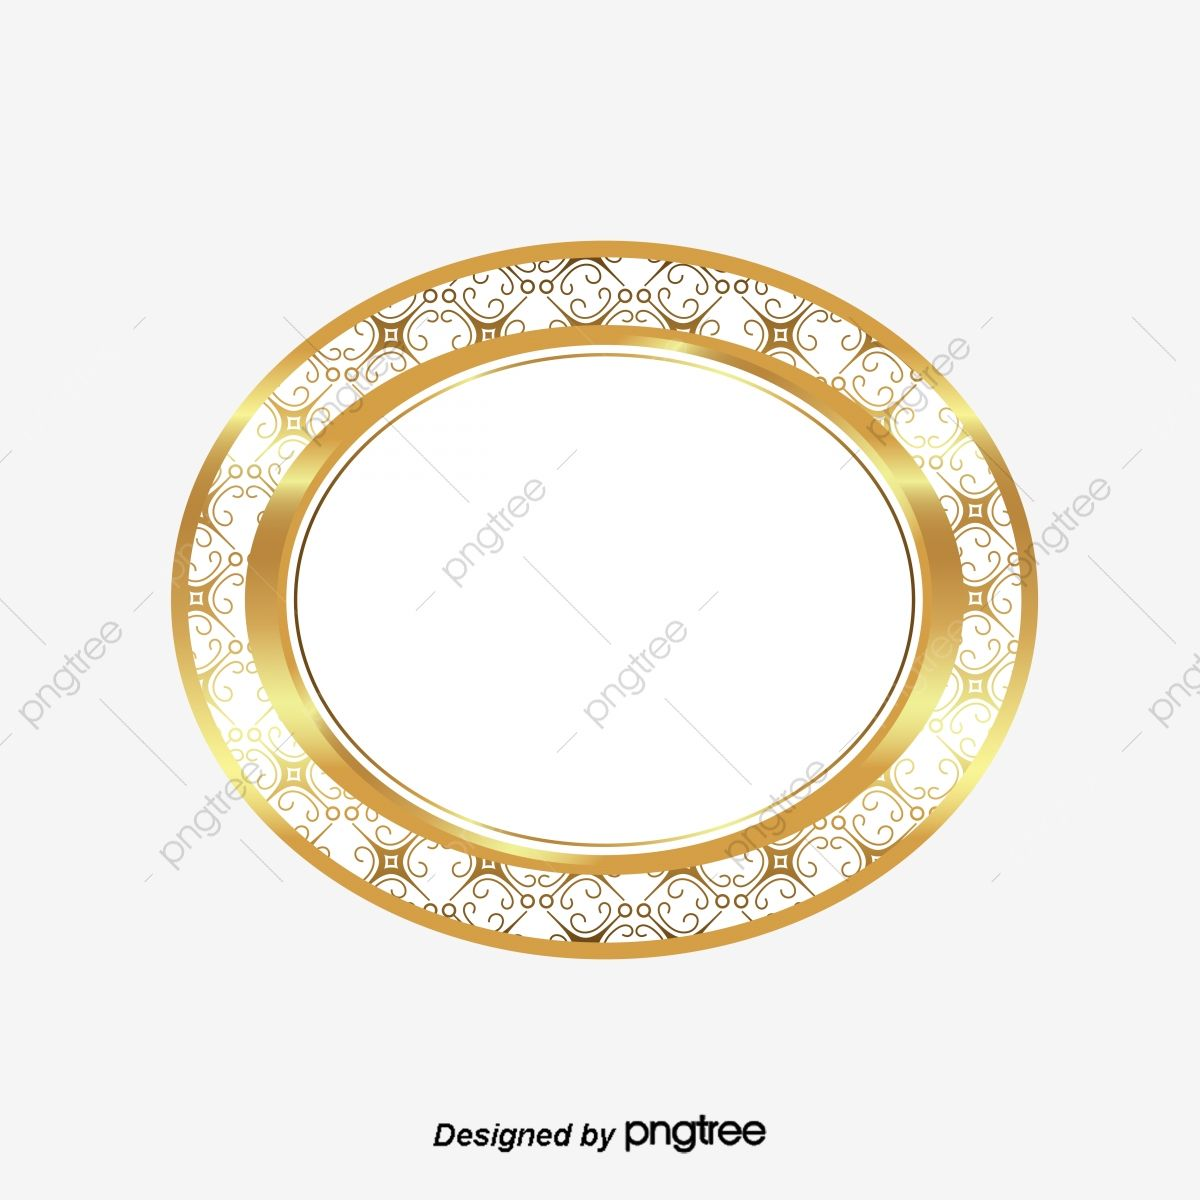 The Circle Frame Style Elegant Gold Thai Patterns Golden Circle Frame Patterns Png And Vector With Transparent Background For Free Download Circle Frames Fashion Frames Thai Pattern